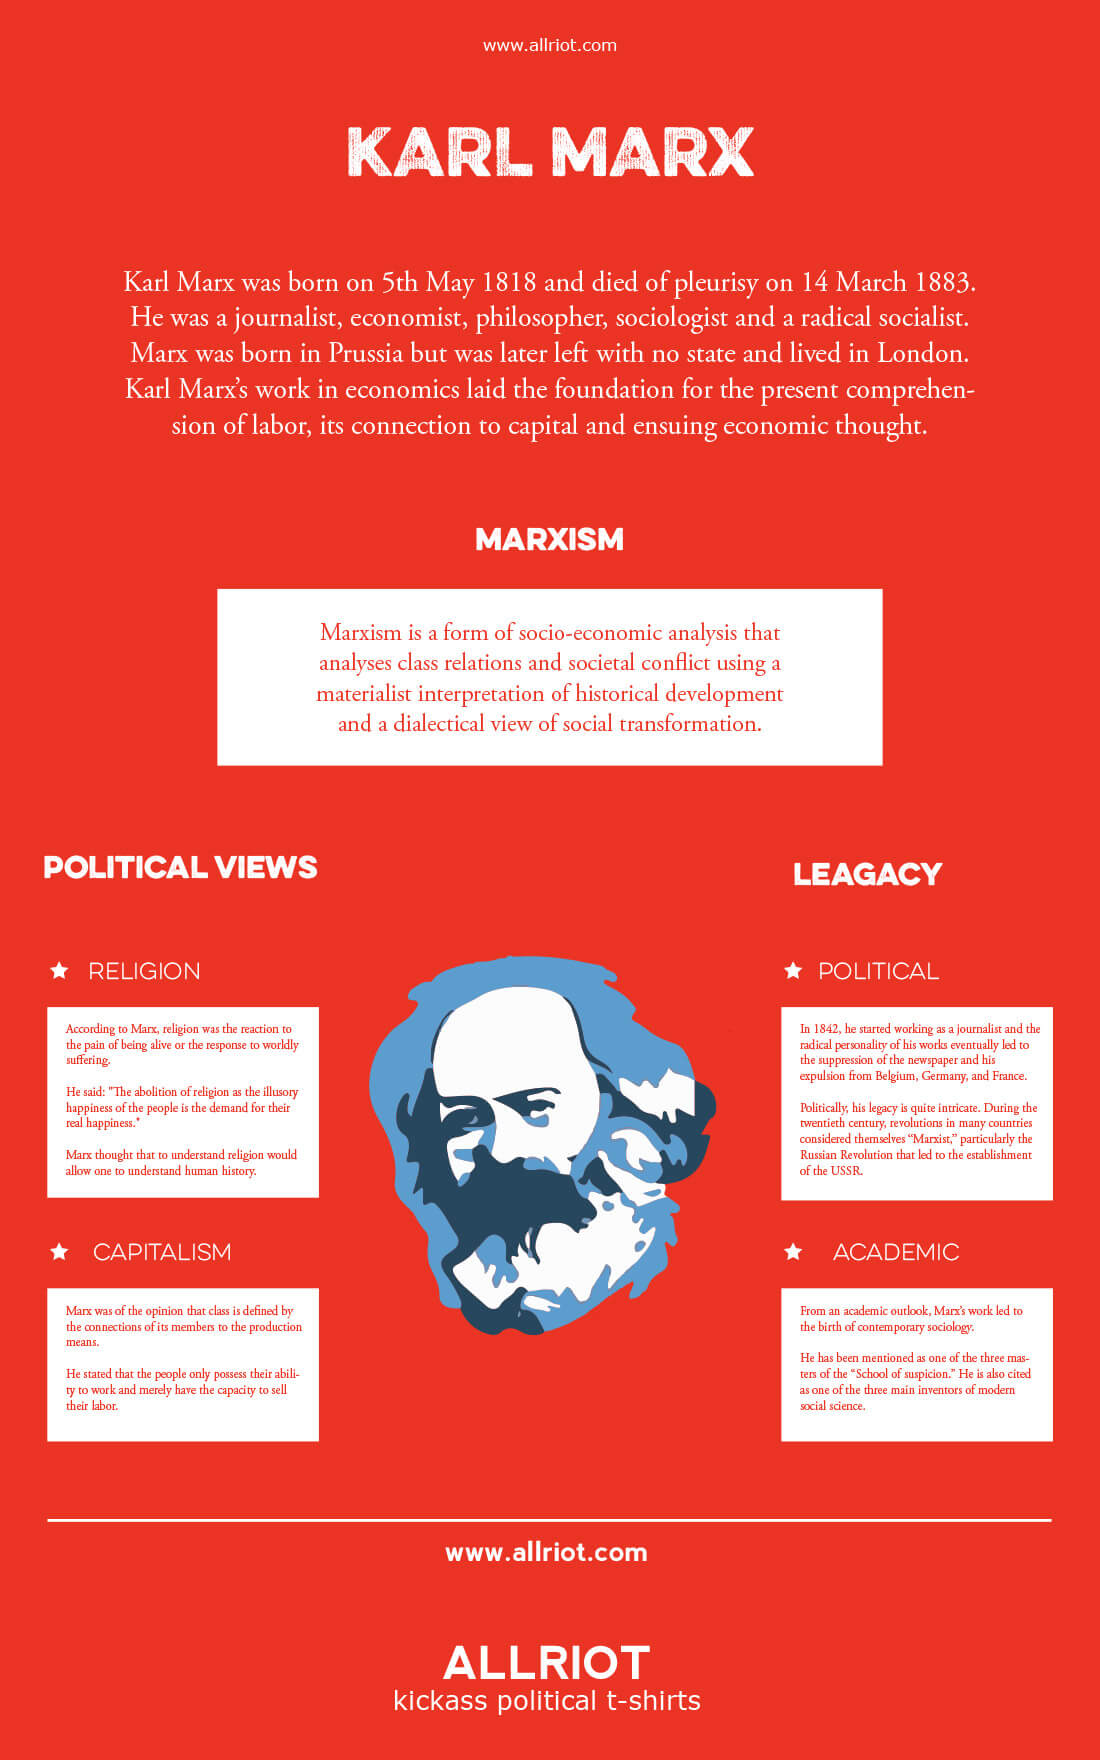 The Life and Legacy of Karl Marx